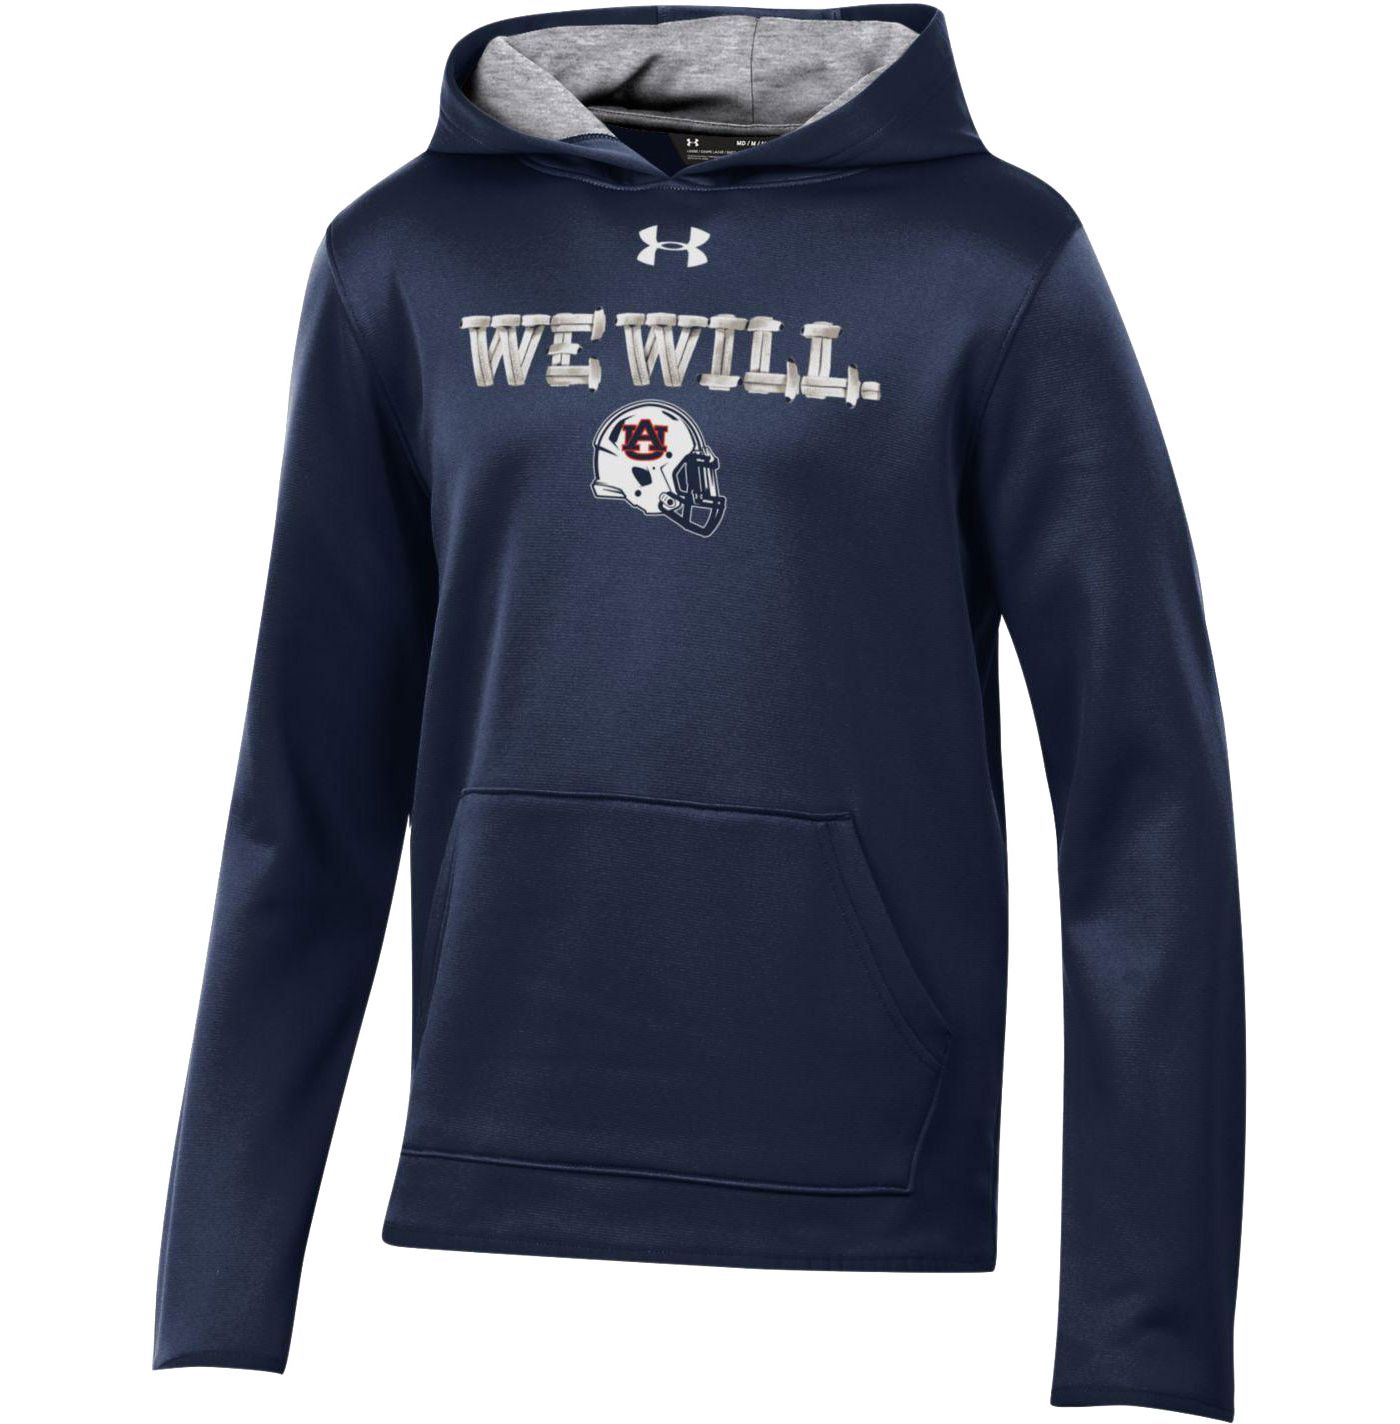 Under Armour Youth Auburn Tigers Blue 'We Will' Armourfleece Performance Football Hoodie